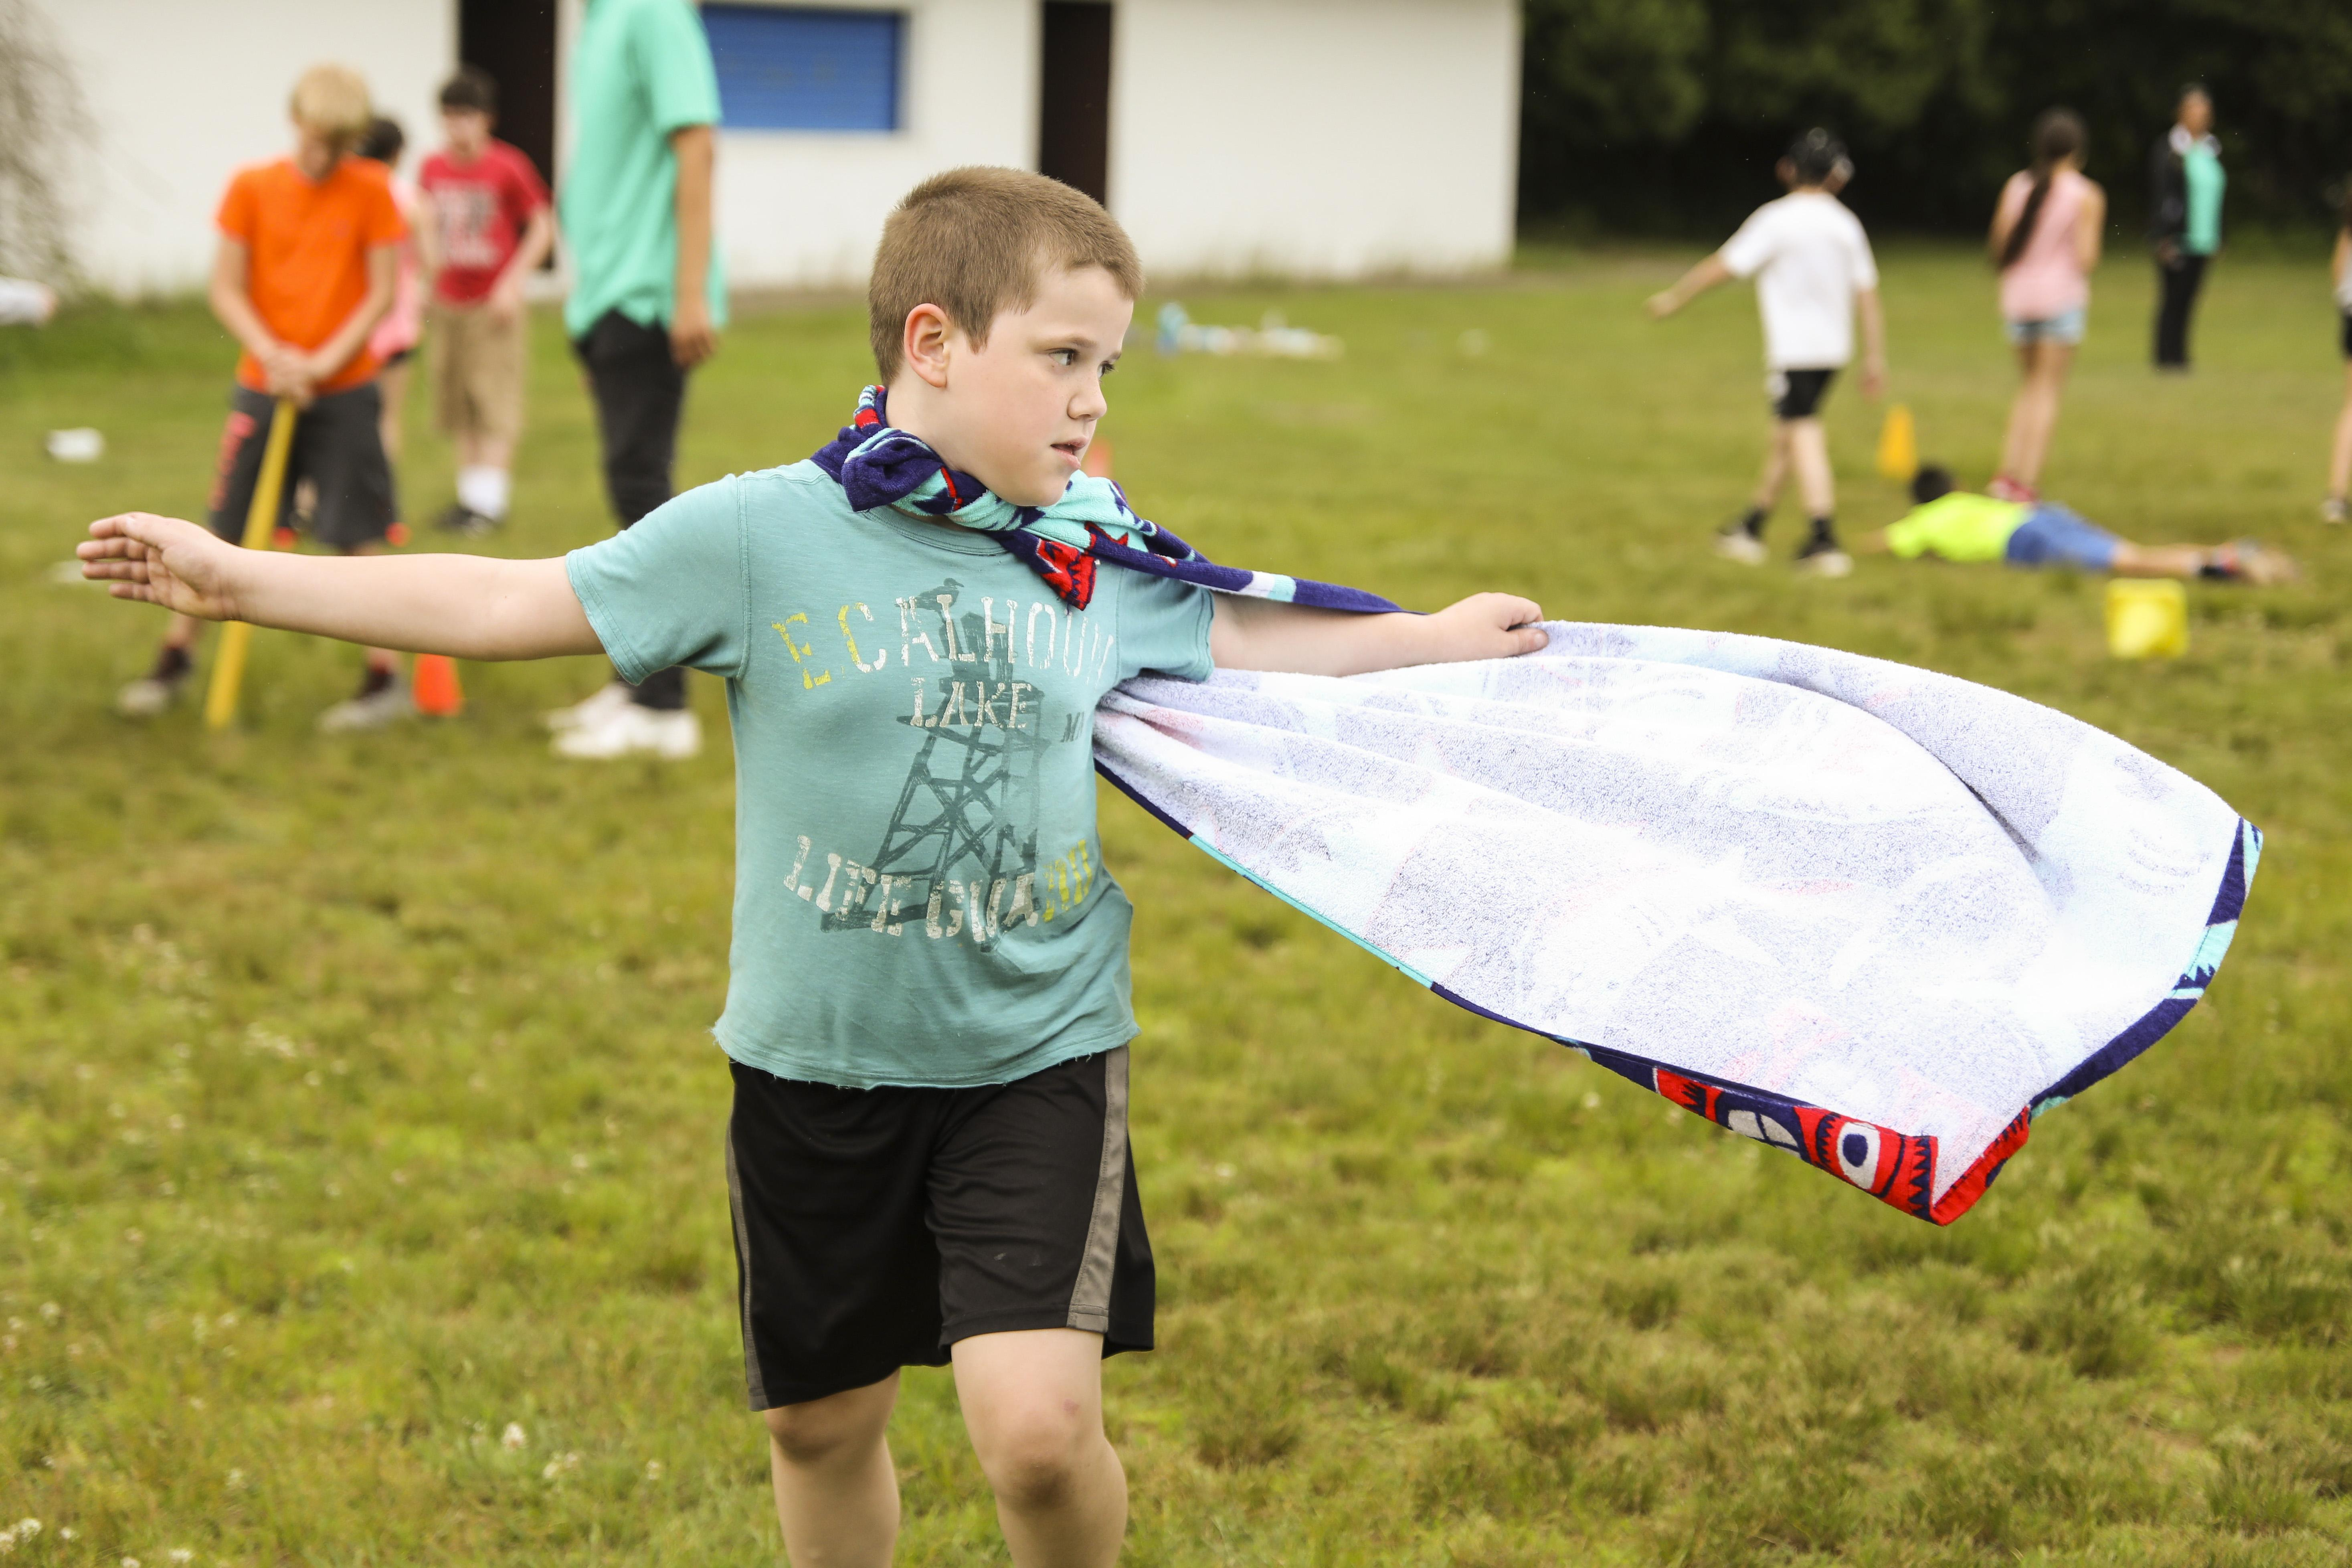 Boy twirling with cape